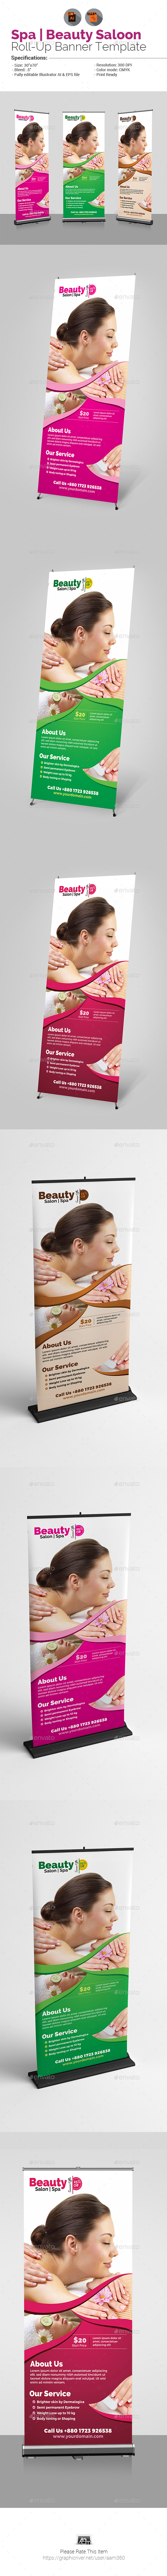 Spa & Beauty Salon Roll-Up Banner - Signage Print Templates